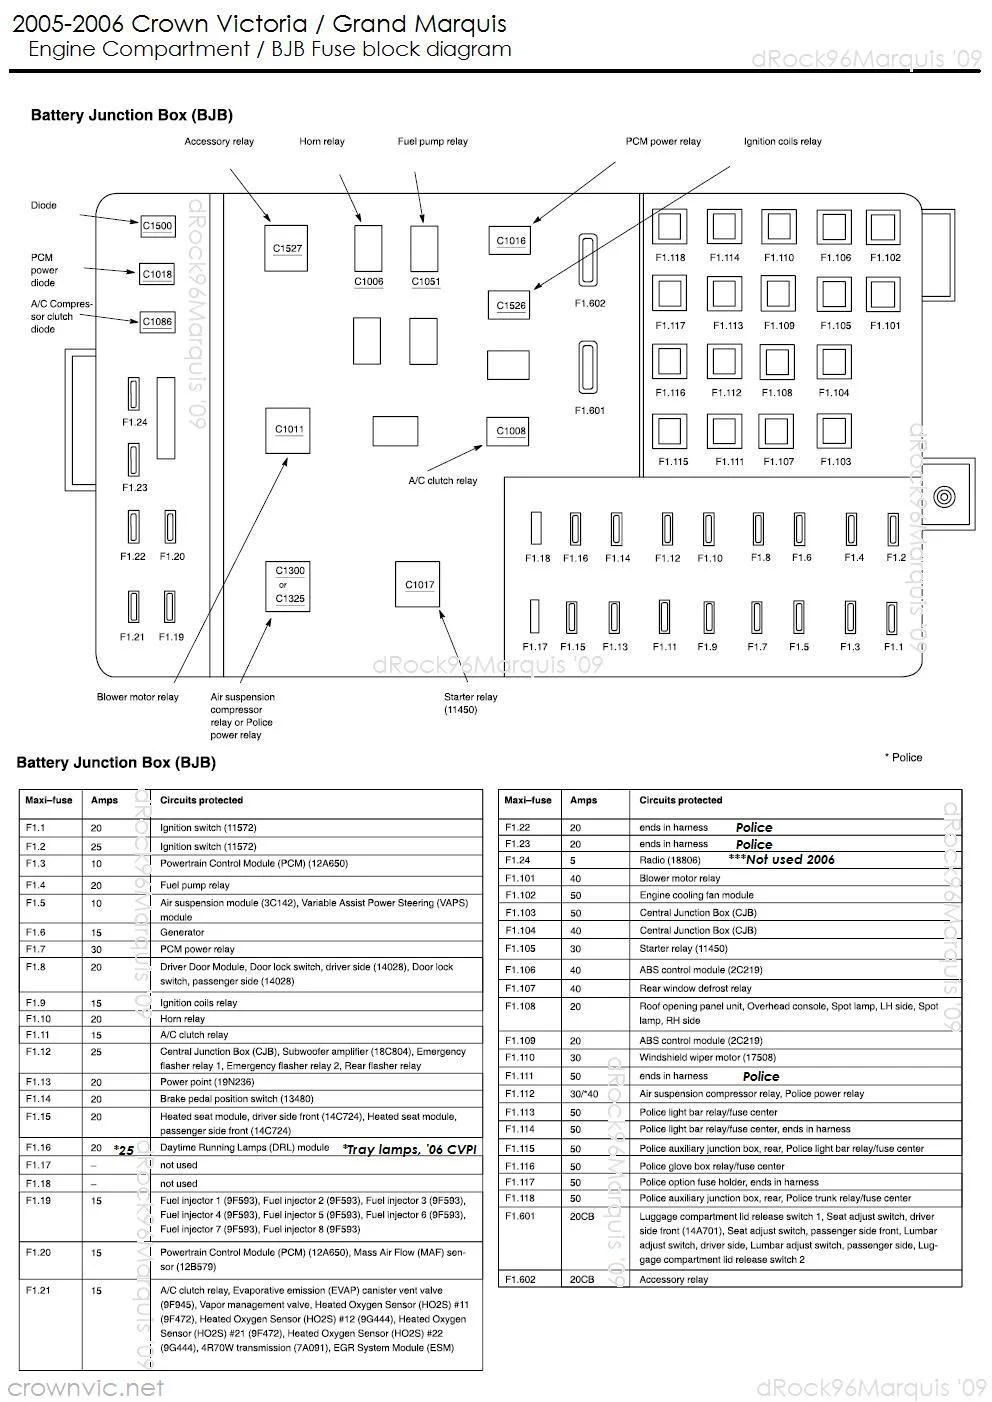 medium resolution of 2006 ford crown victoria fuse box diagram wiring diagrams scematic 2008 ford crown victoria fuse box diagram 05 ford crown vic fuse diagram